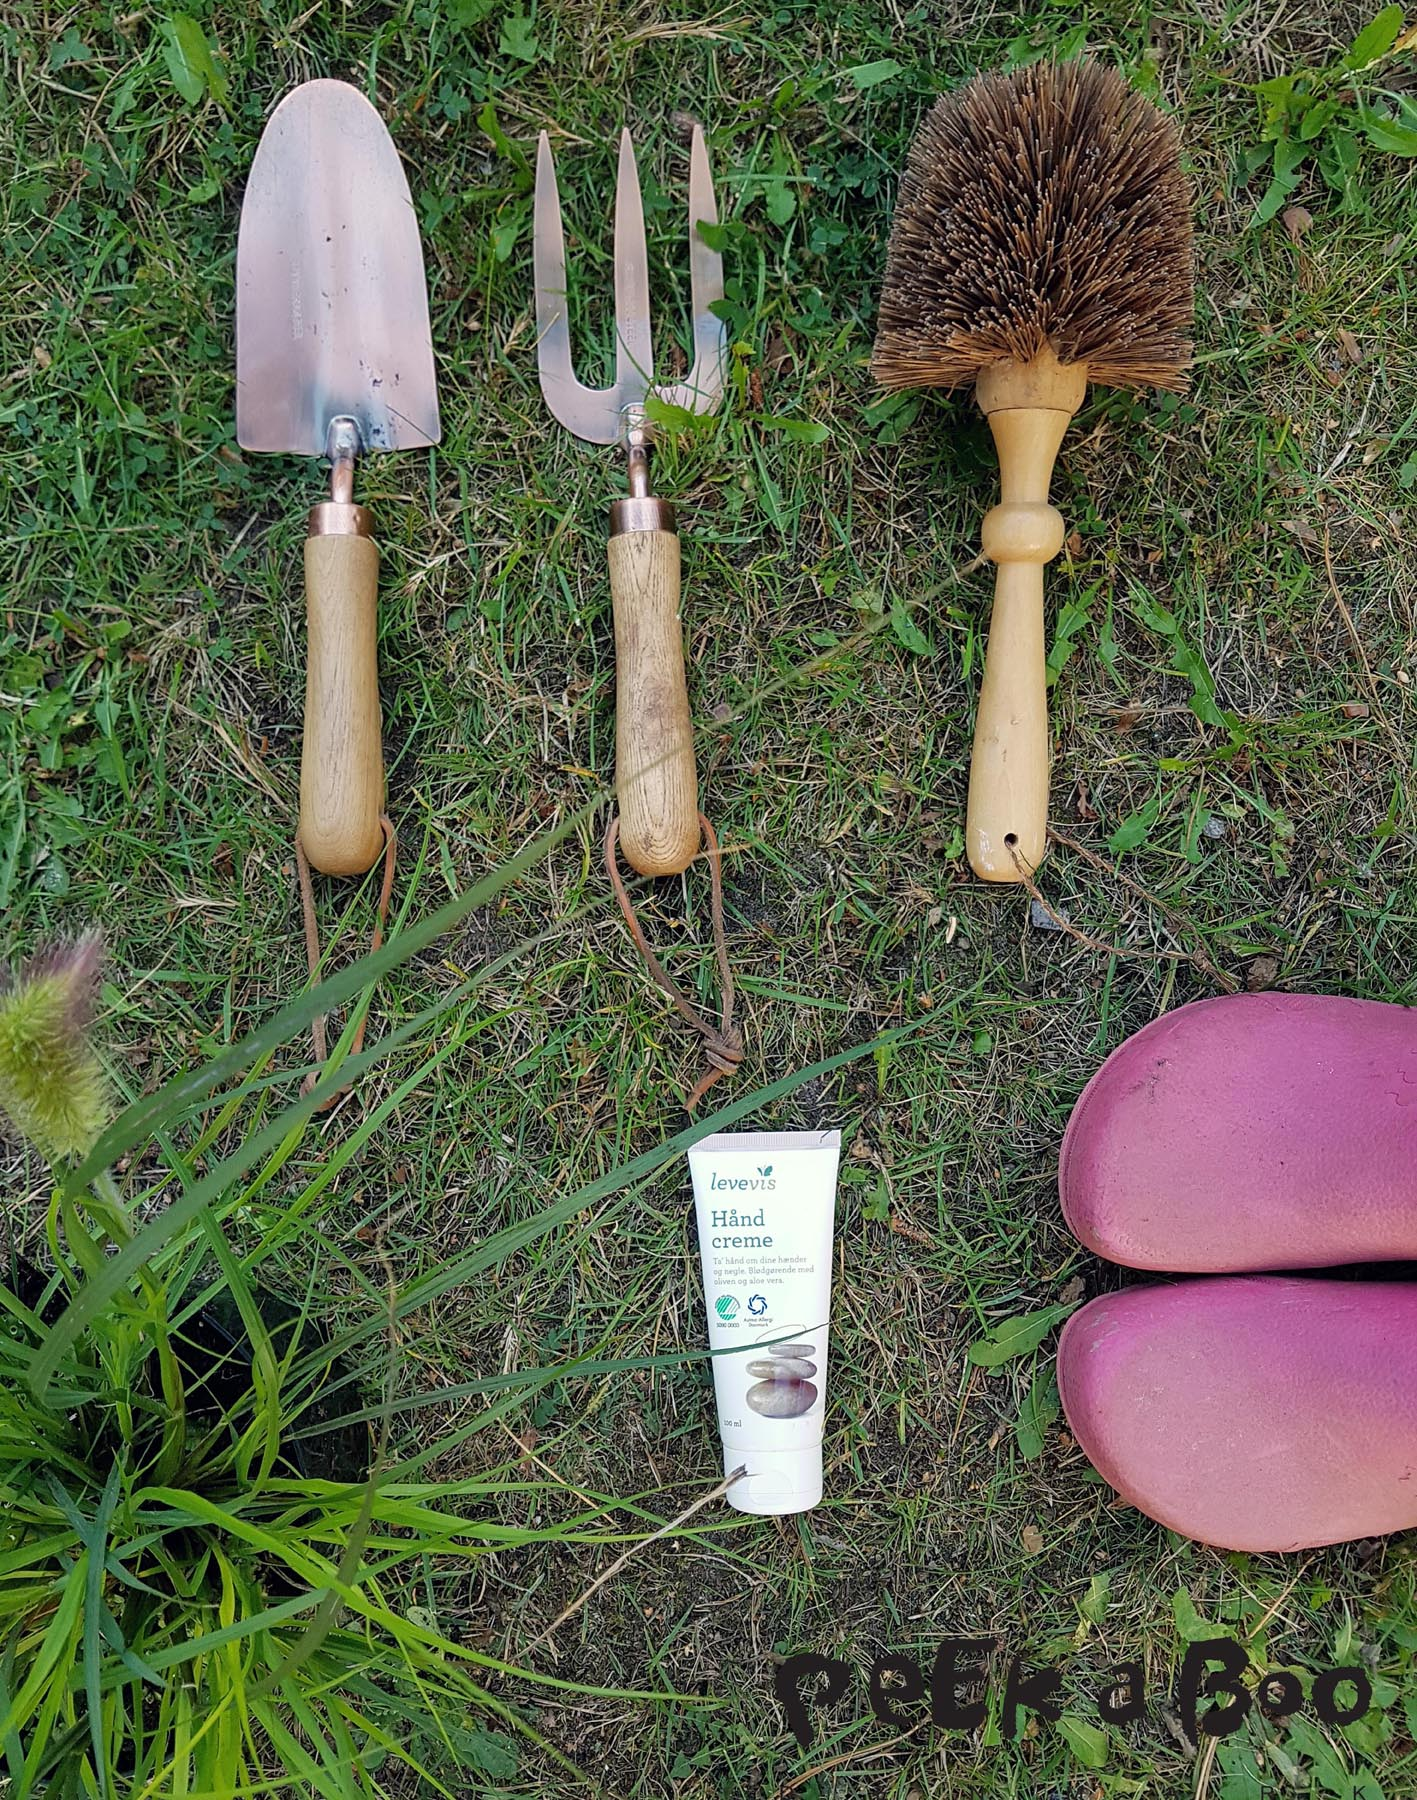 Garden tools from Ellos in brass and tree and a brush for your pots. The hand lotion I use is from Levevis. All the plants are from Gartneriet Pedersen.